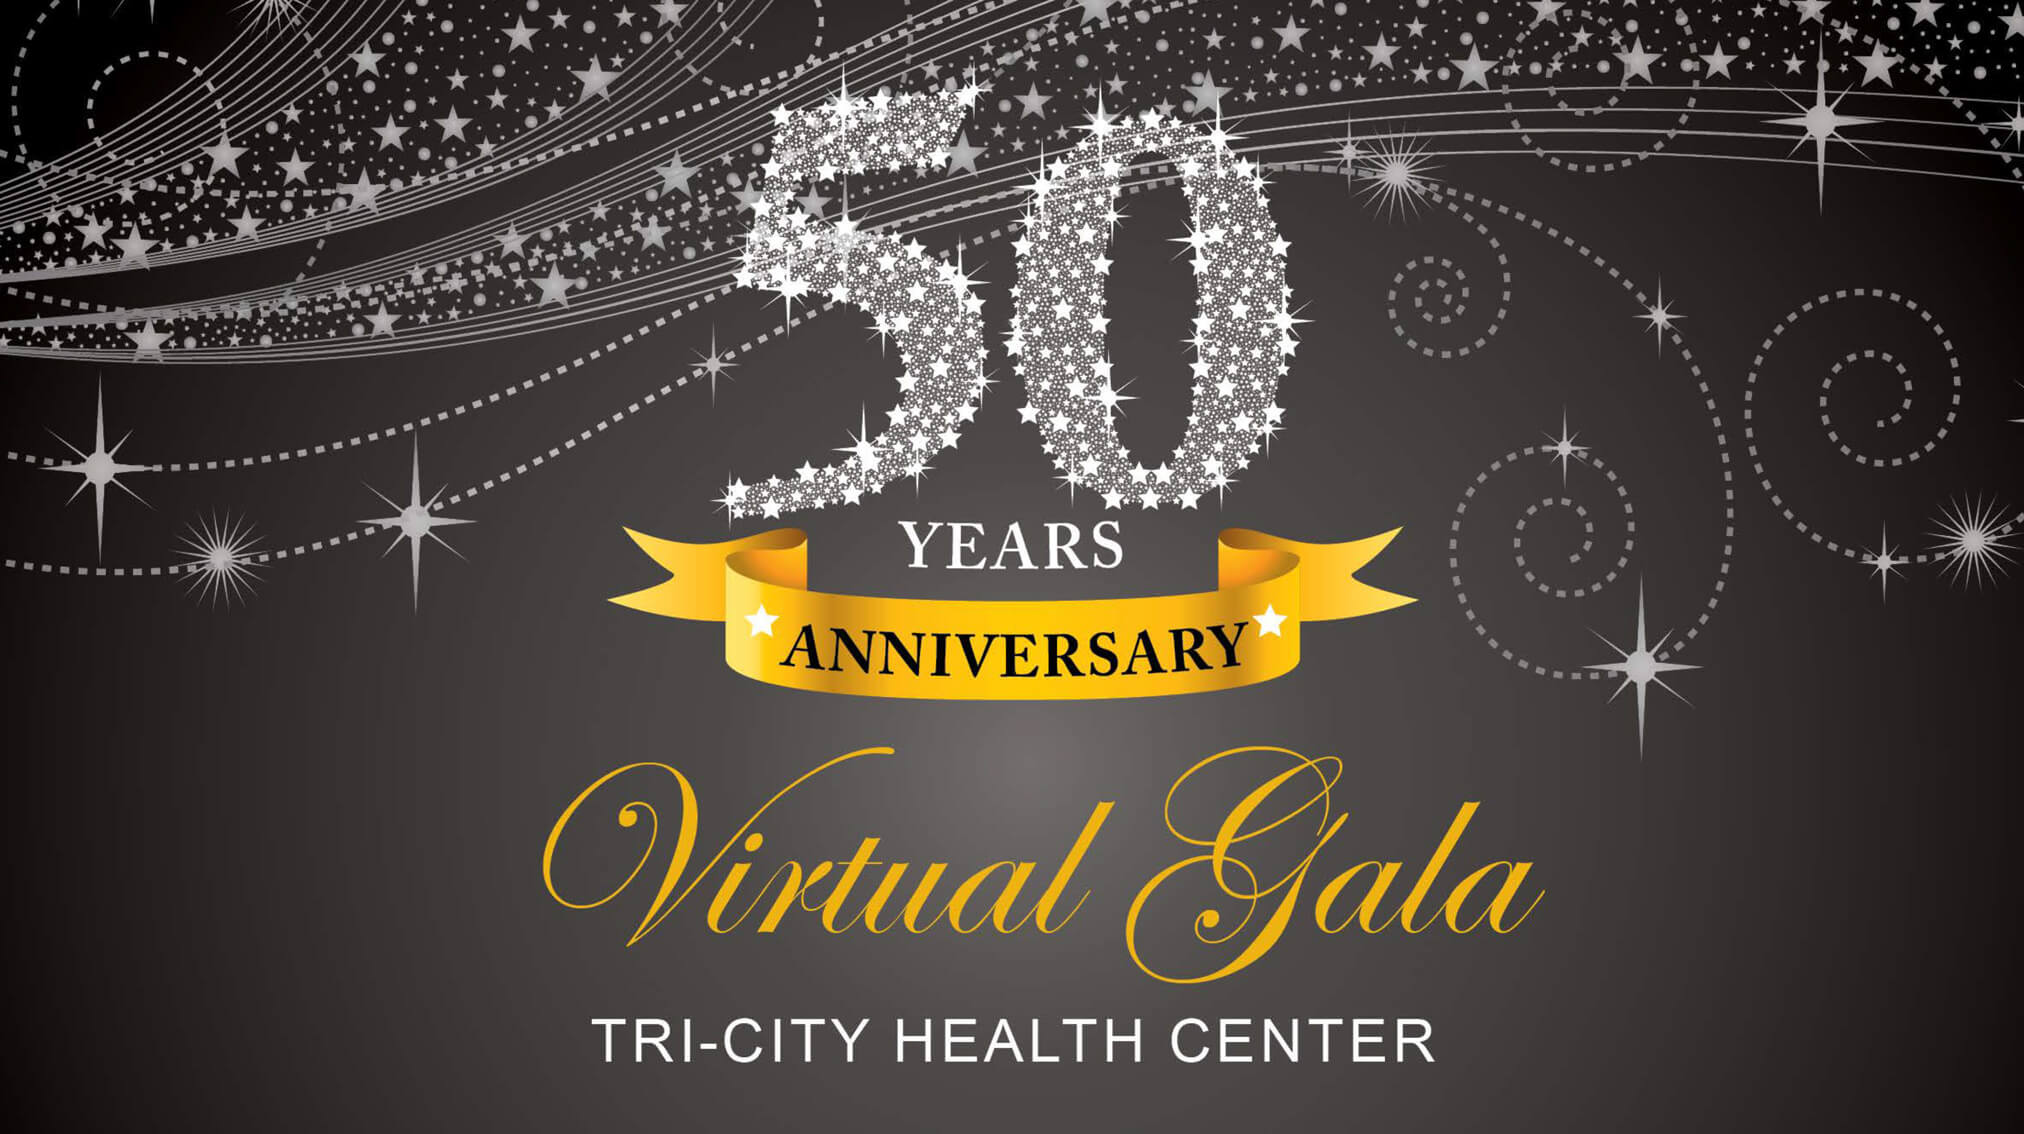 Tri-City Health Center Celebrates 50 Years with our Virtual Gala